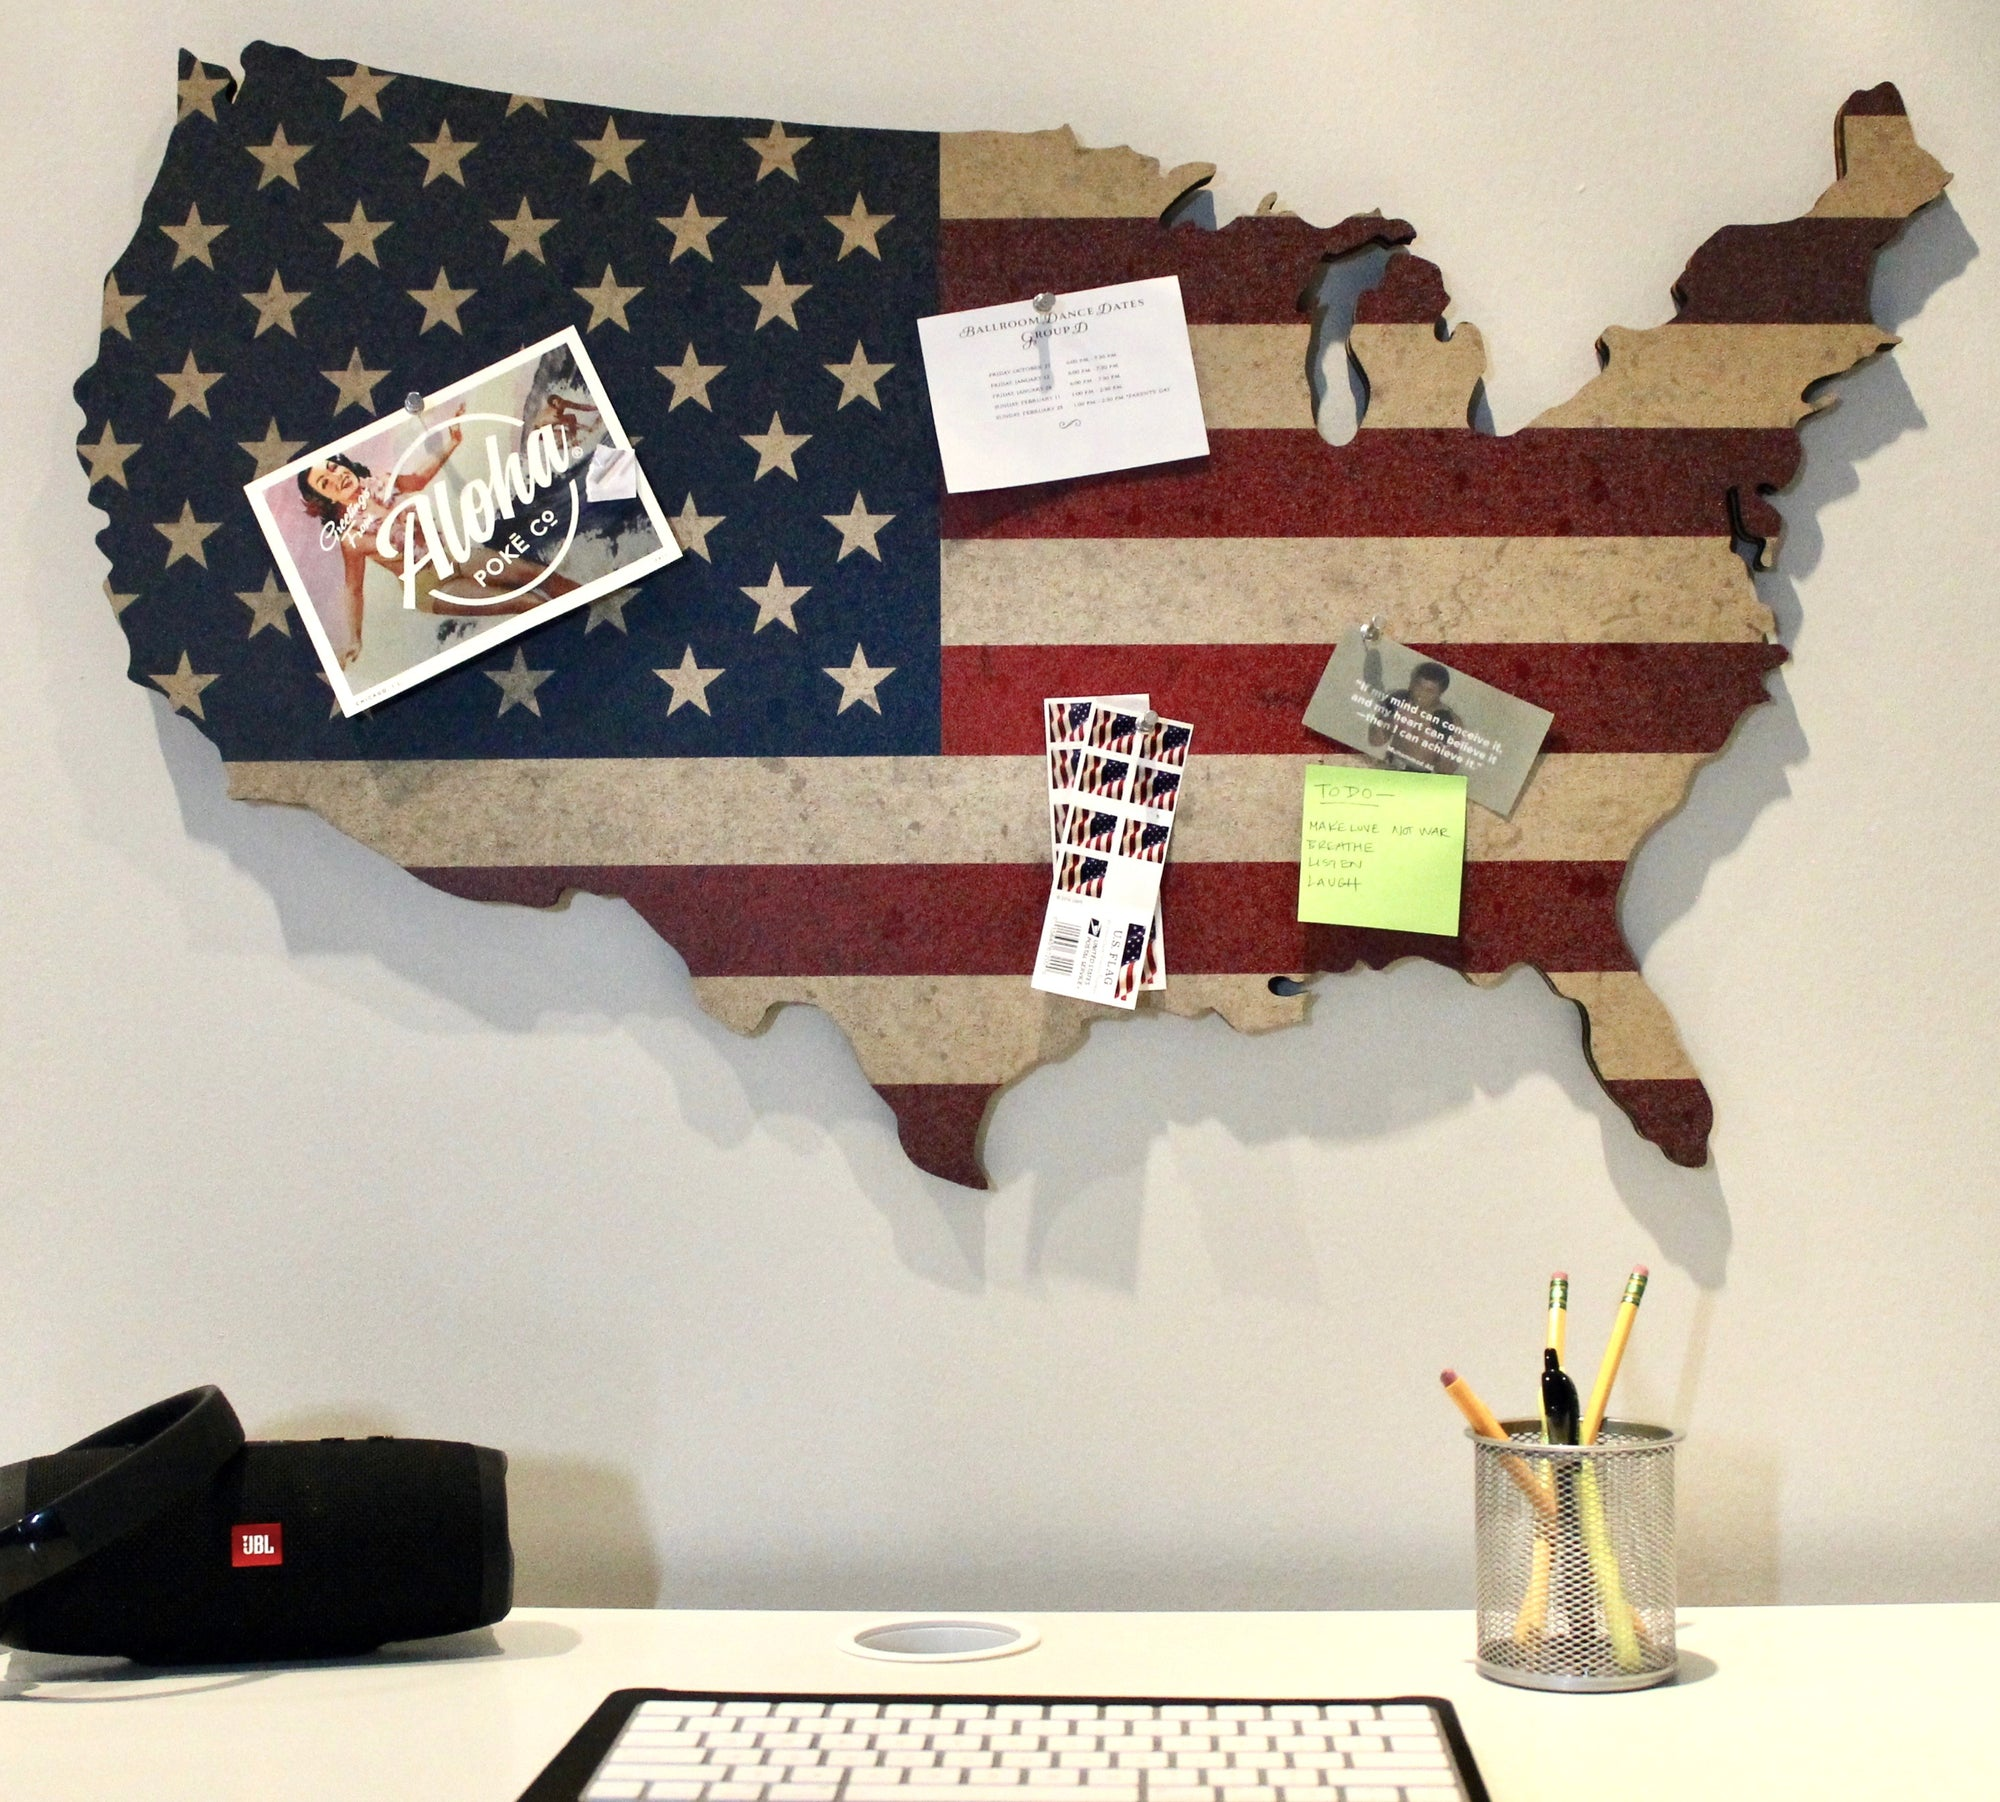 Us Map On Cork Board.Cork Bulletin Board Us Map With American Flag Print Finelineflag